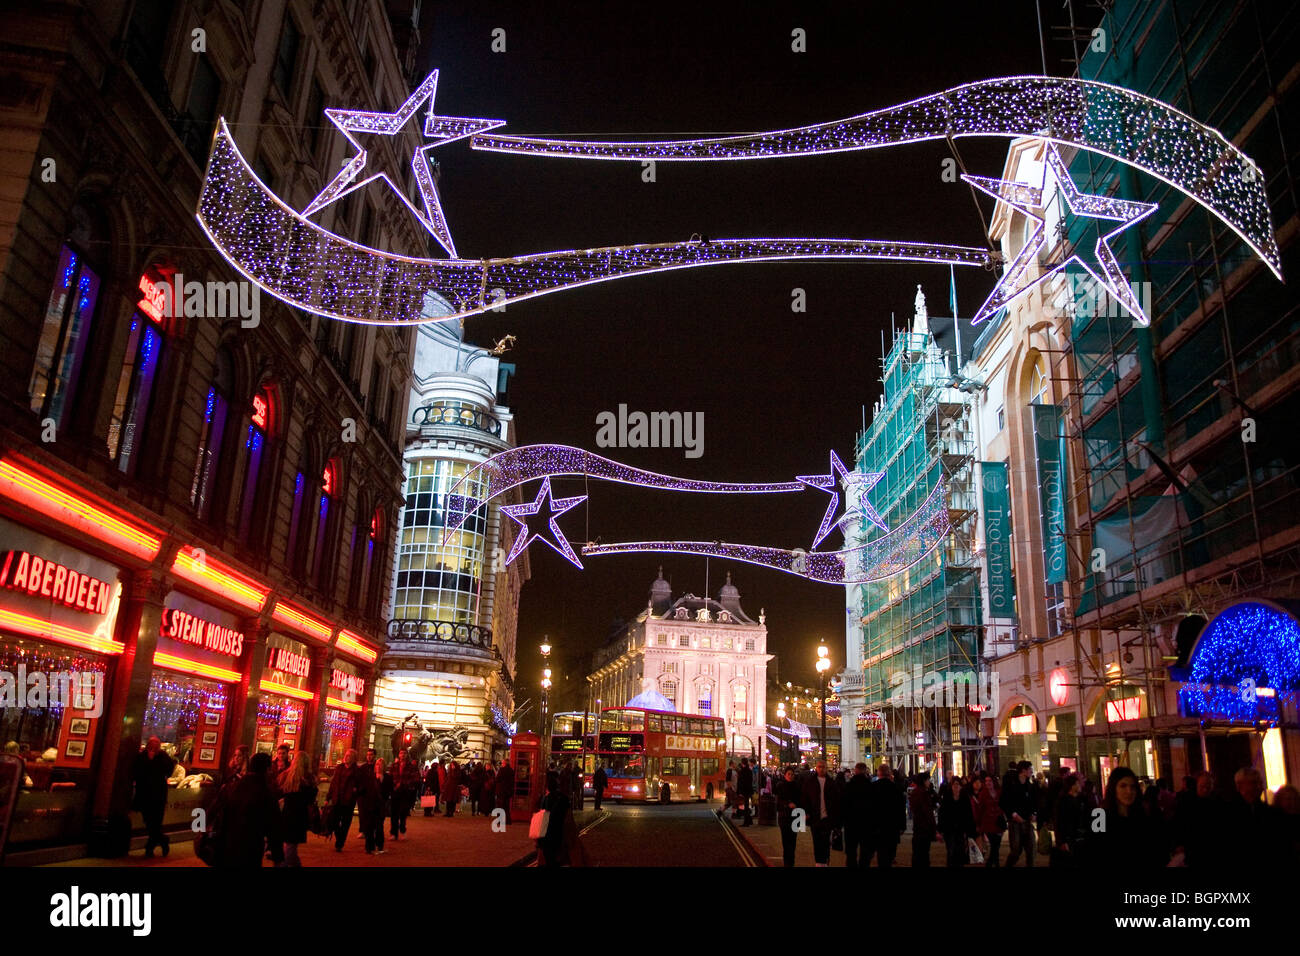 Christmas In England.Christmas Decorations London England Britain Uk Stock